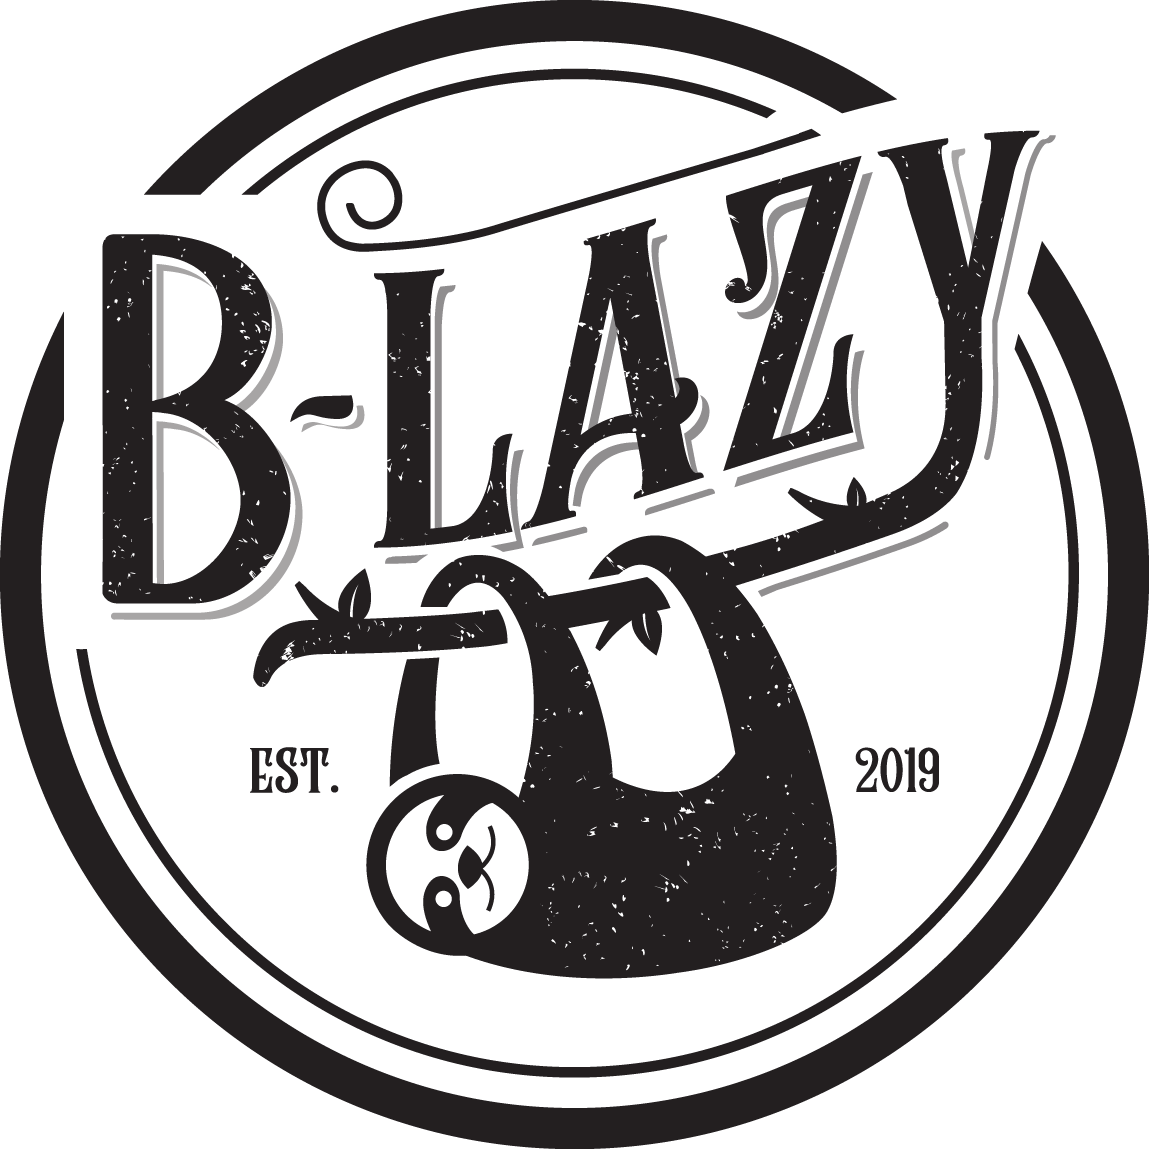 Different Colors Background Logo for B-Lazy